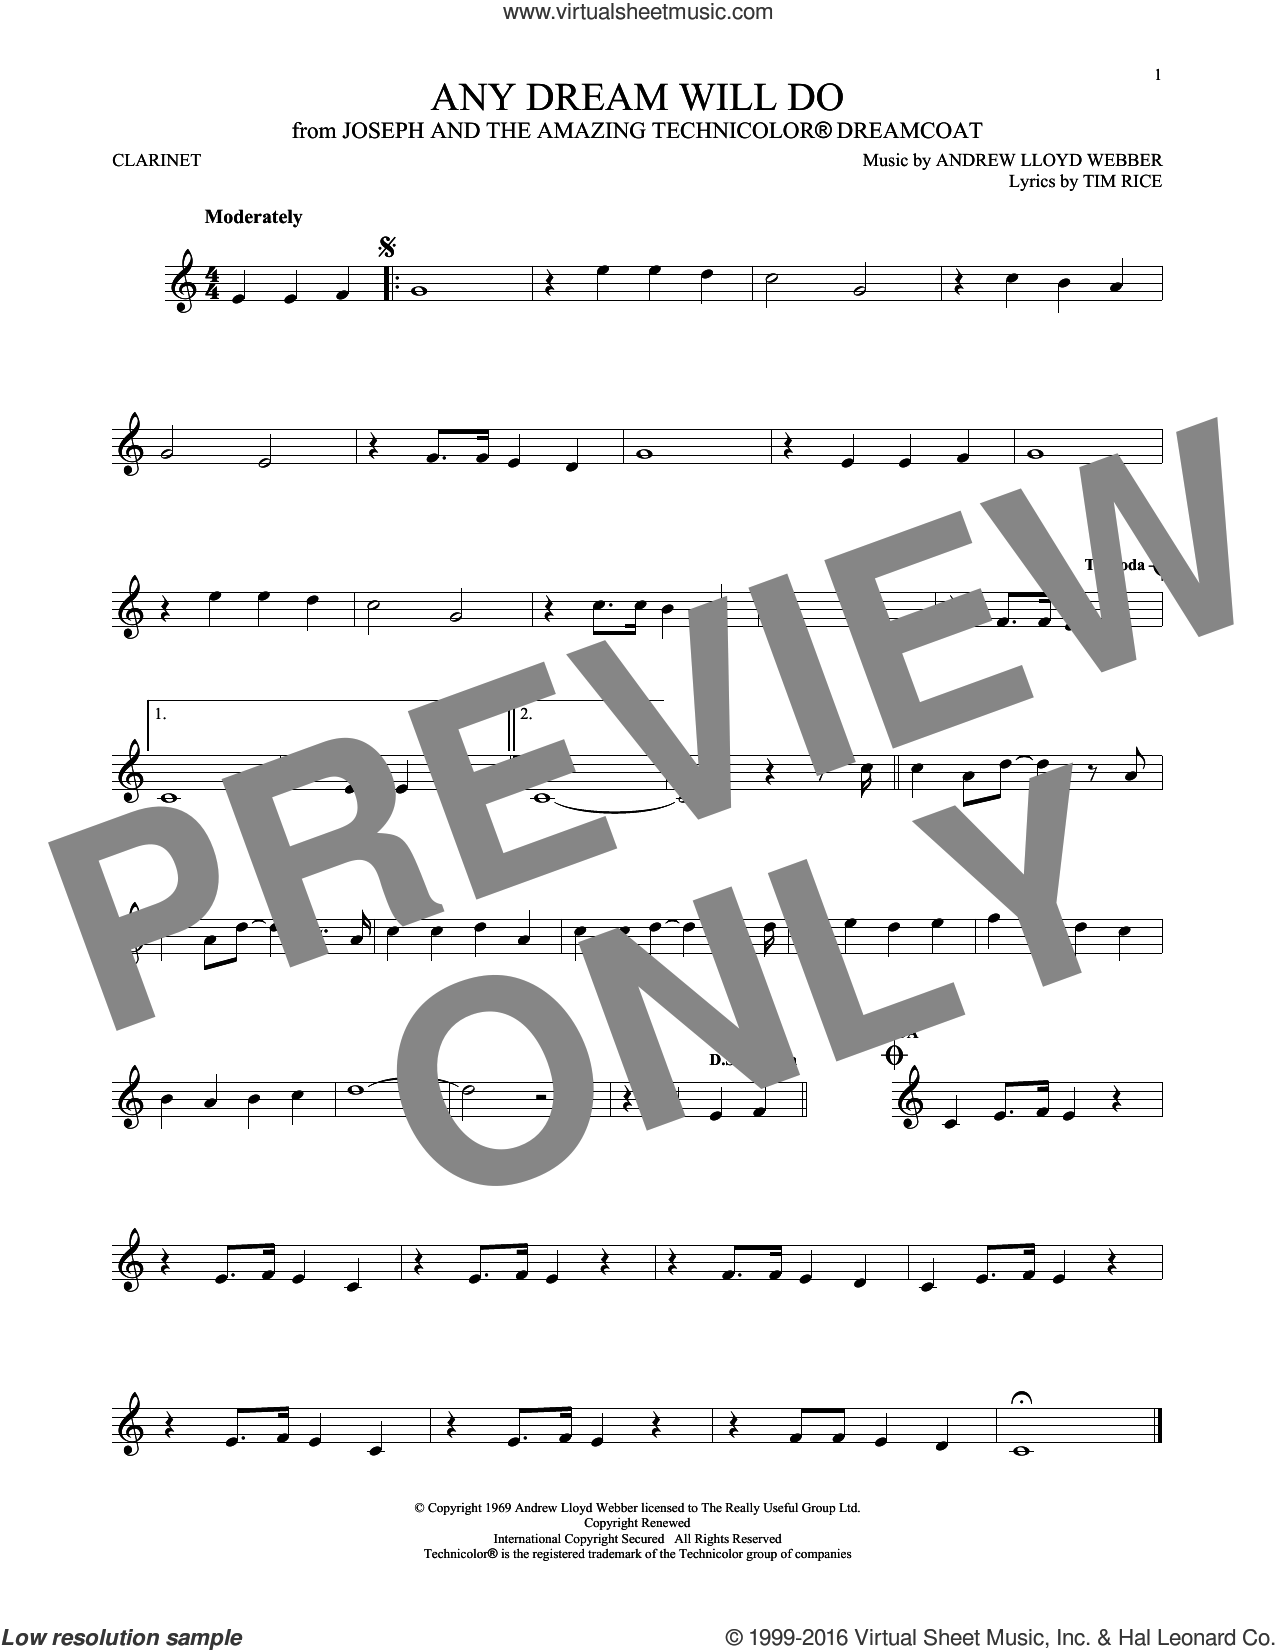 Any Dream Will Do sheet music for clarinet solo by Andrew Lloyd Webber, Andrew Lloyd Webber & Tim Rice and Tim Rice, intermediate skill level